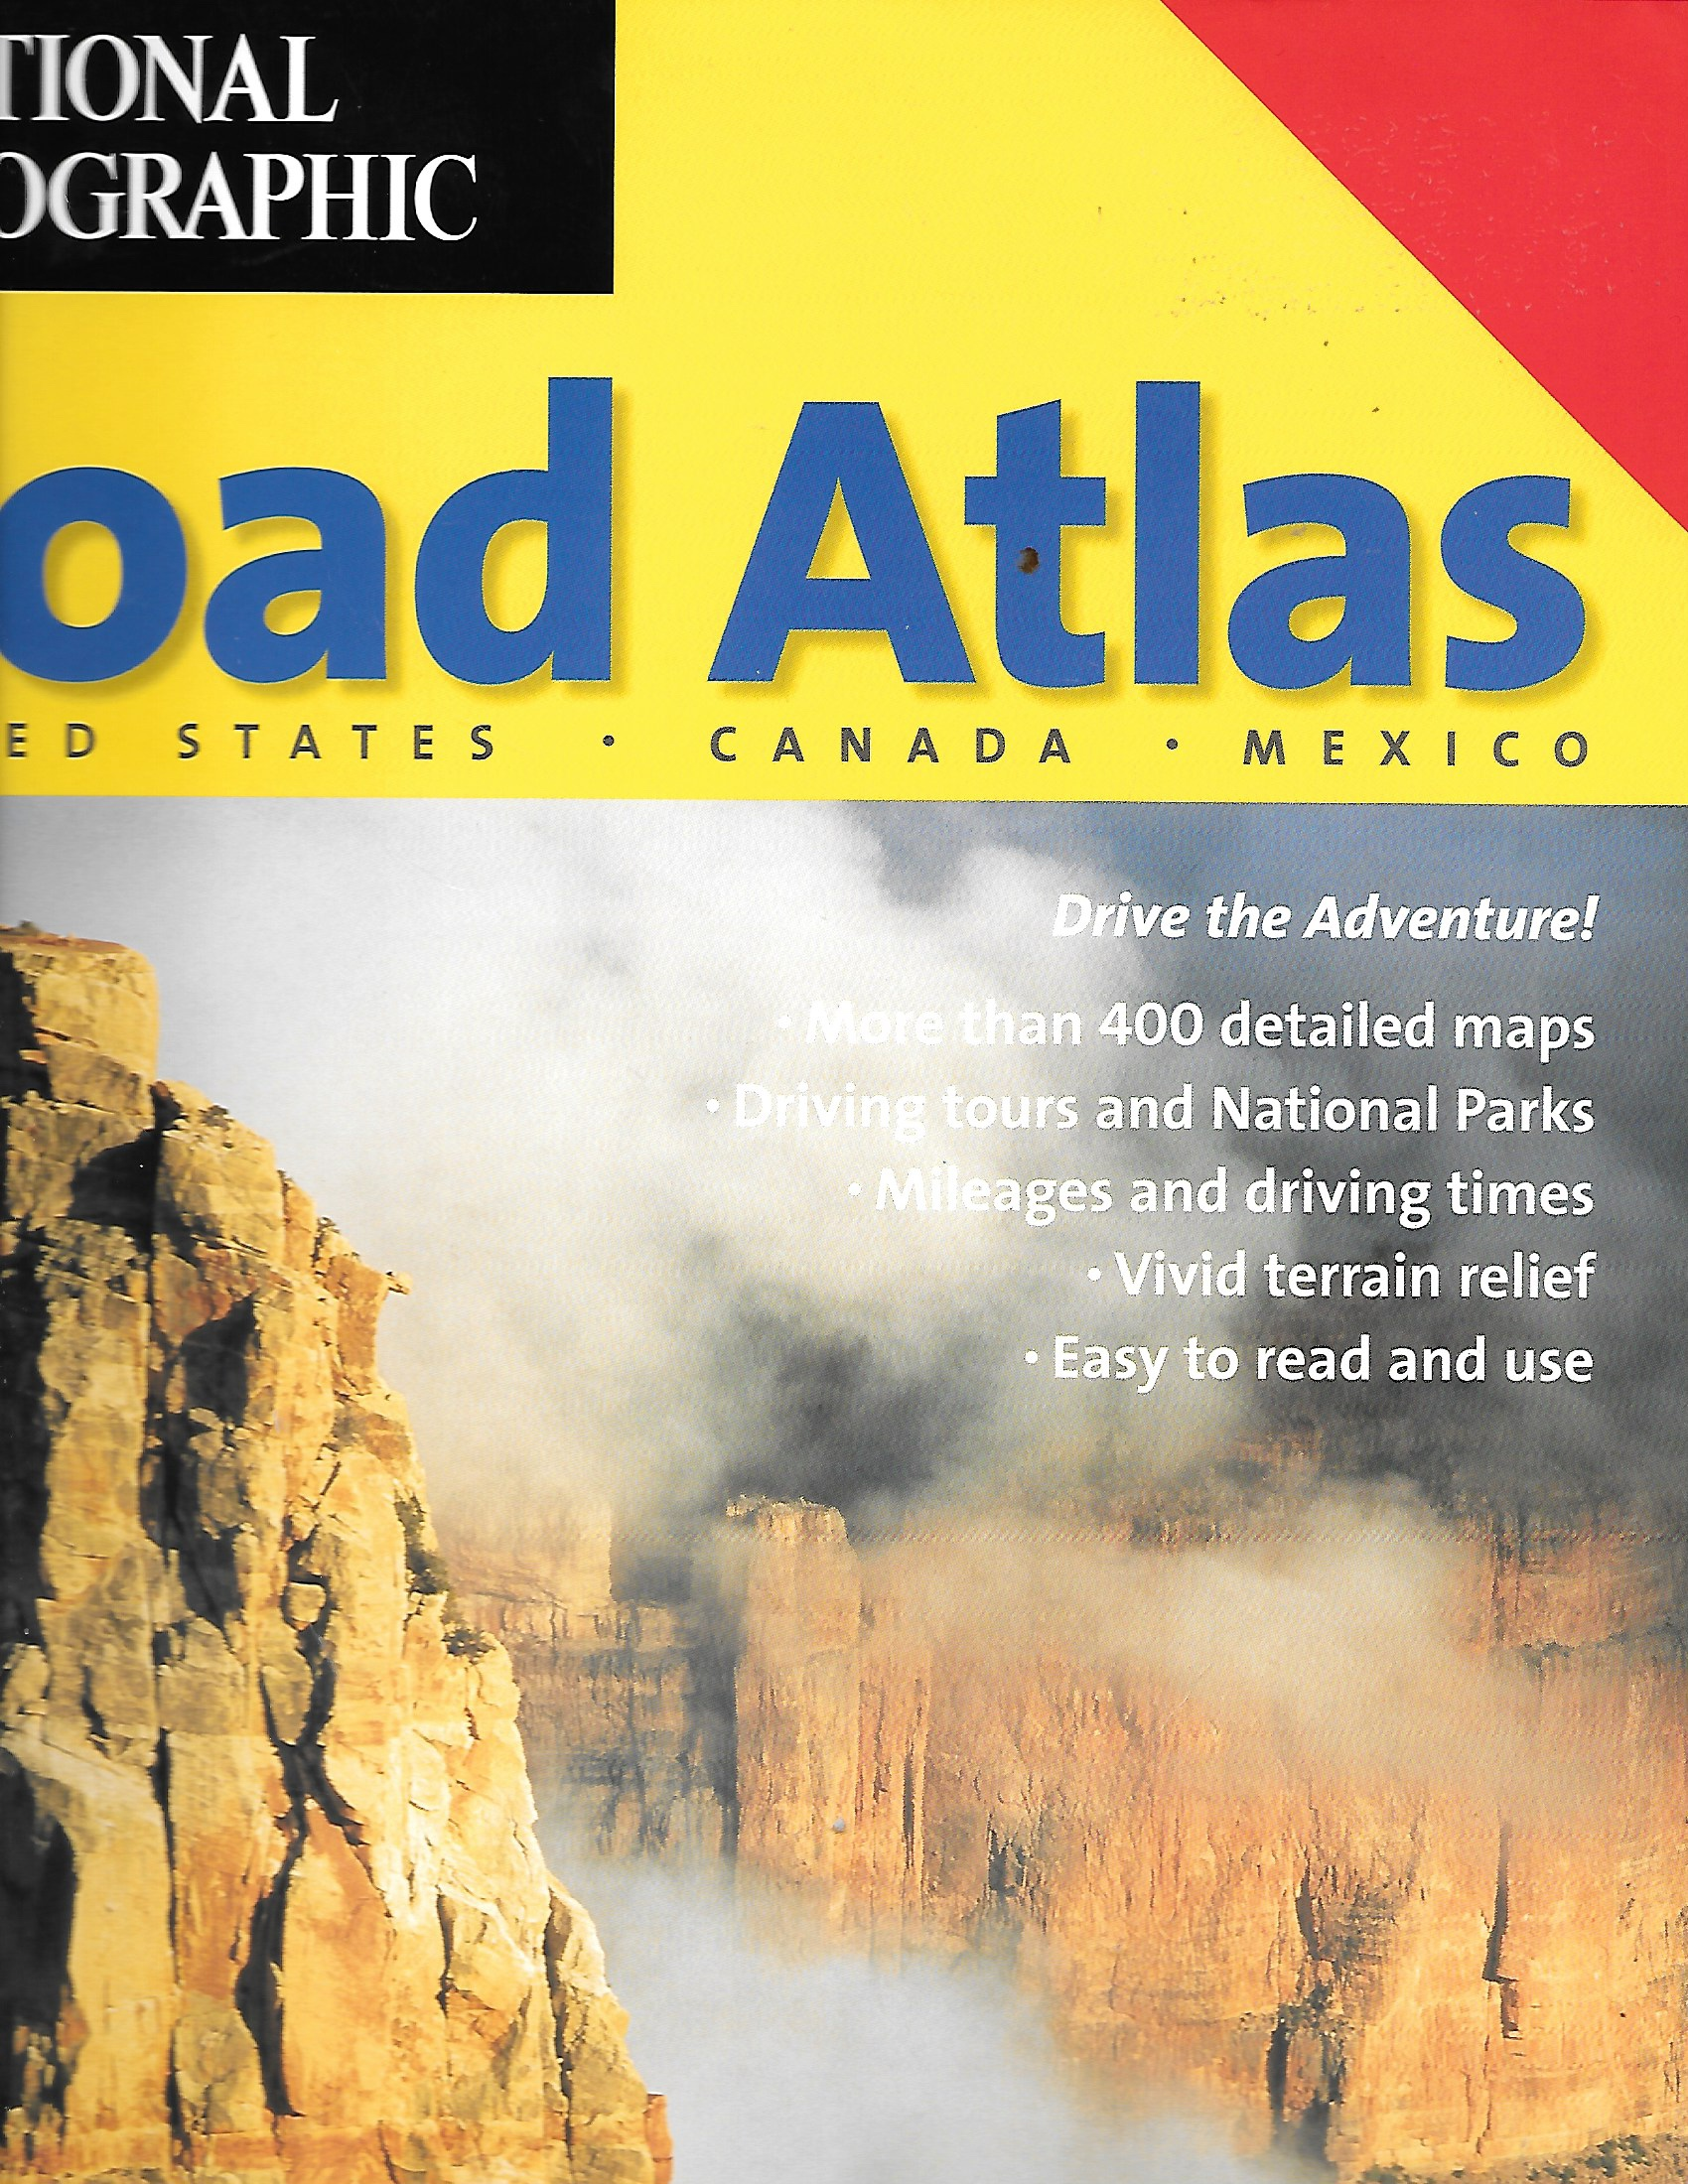 Image for Road Atlas United States, Canada, Mexico